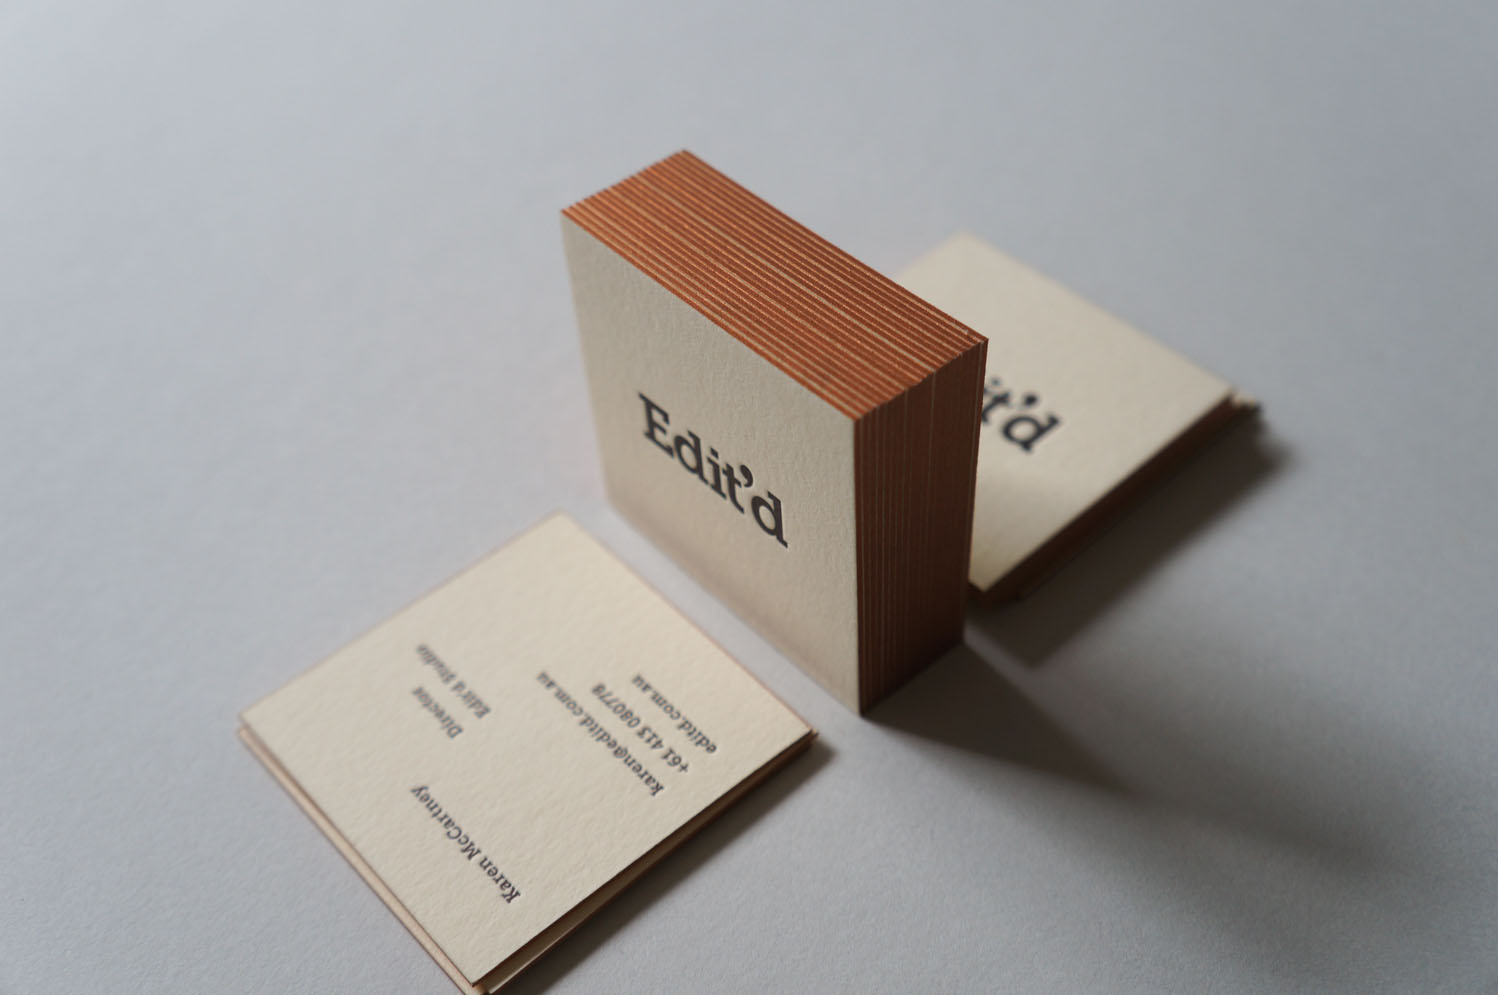 letterpress-business-cards-crane-lettra-edgepaint-1